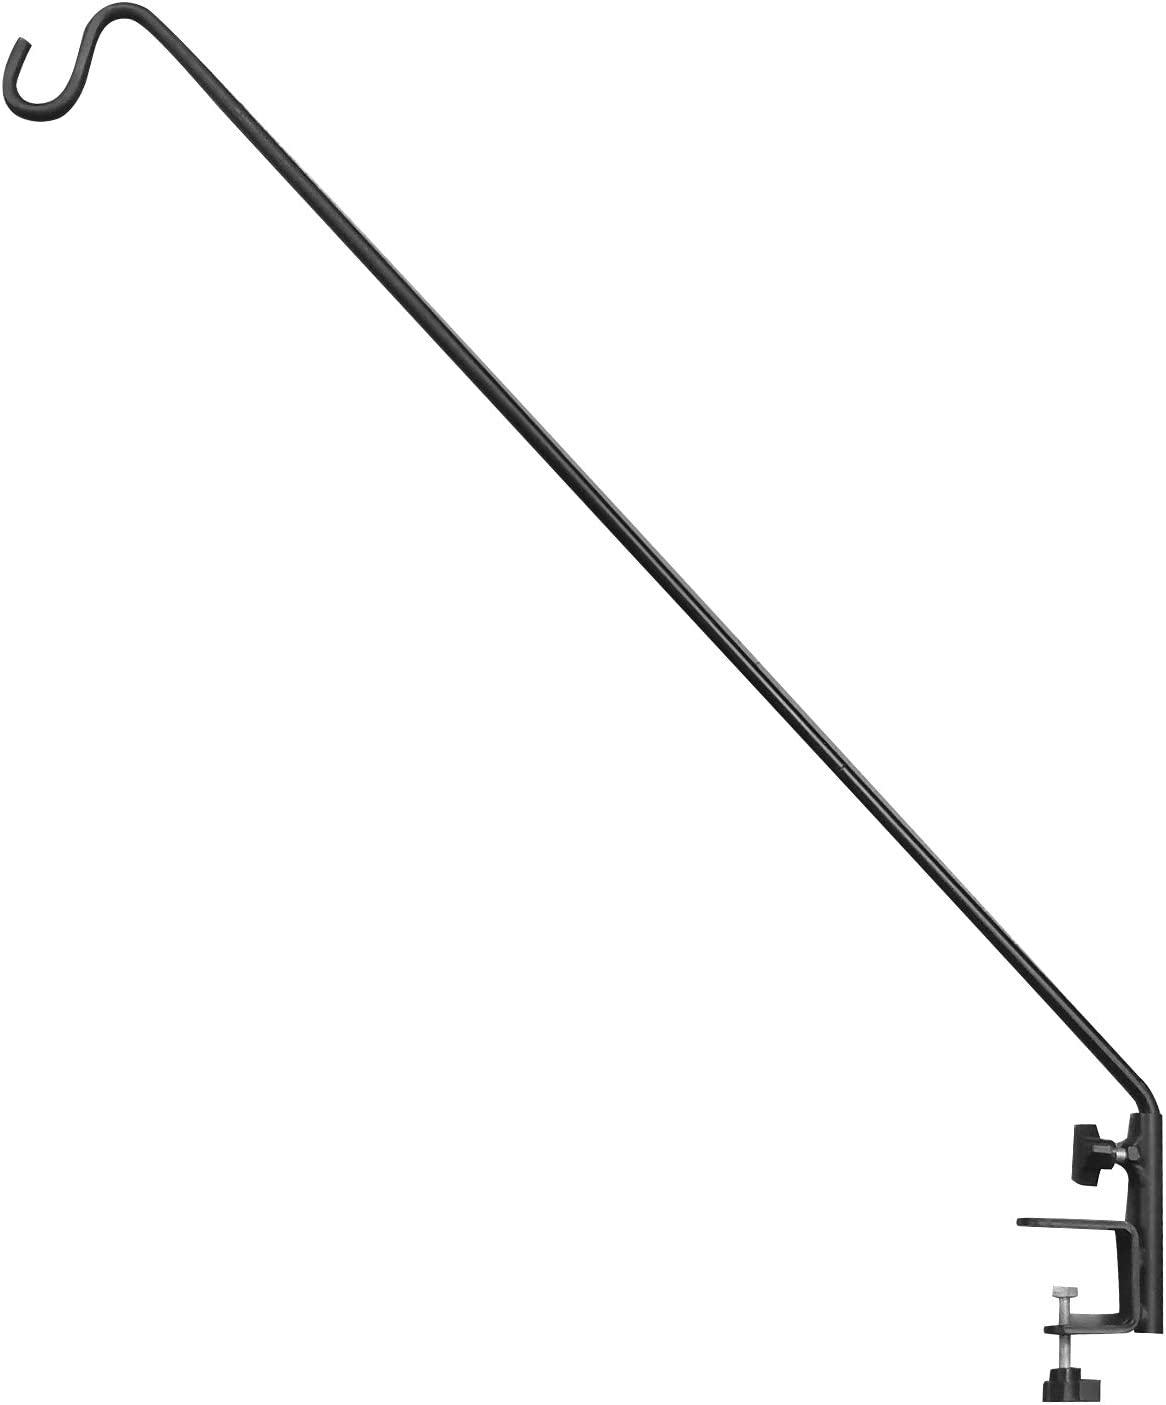 """43""""Heavy Duty Deck Hook, Extensible and Adjustable Deck Hook with 2"""" Non Slip Horizontal Clamp for Hanging Bird Feeder, Plants, Suet Baskets,Wind Chimes,Lanterns and More (1 Pack)"""